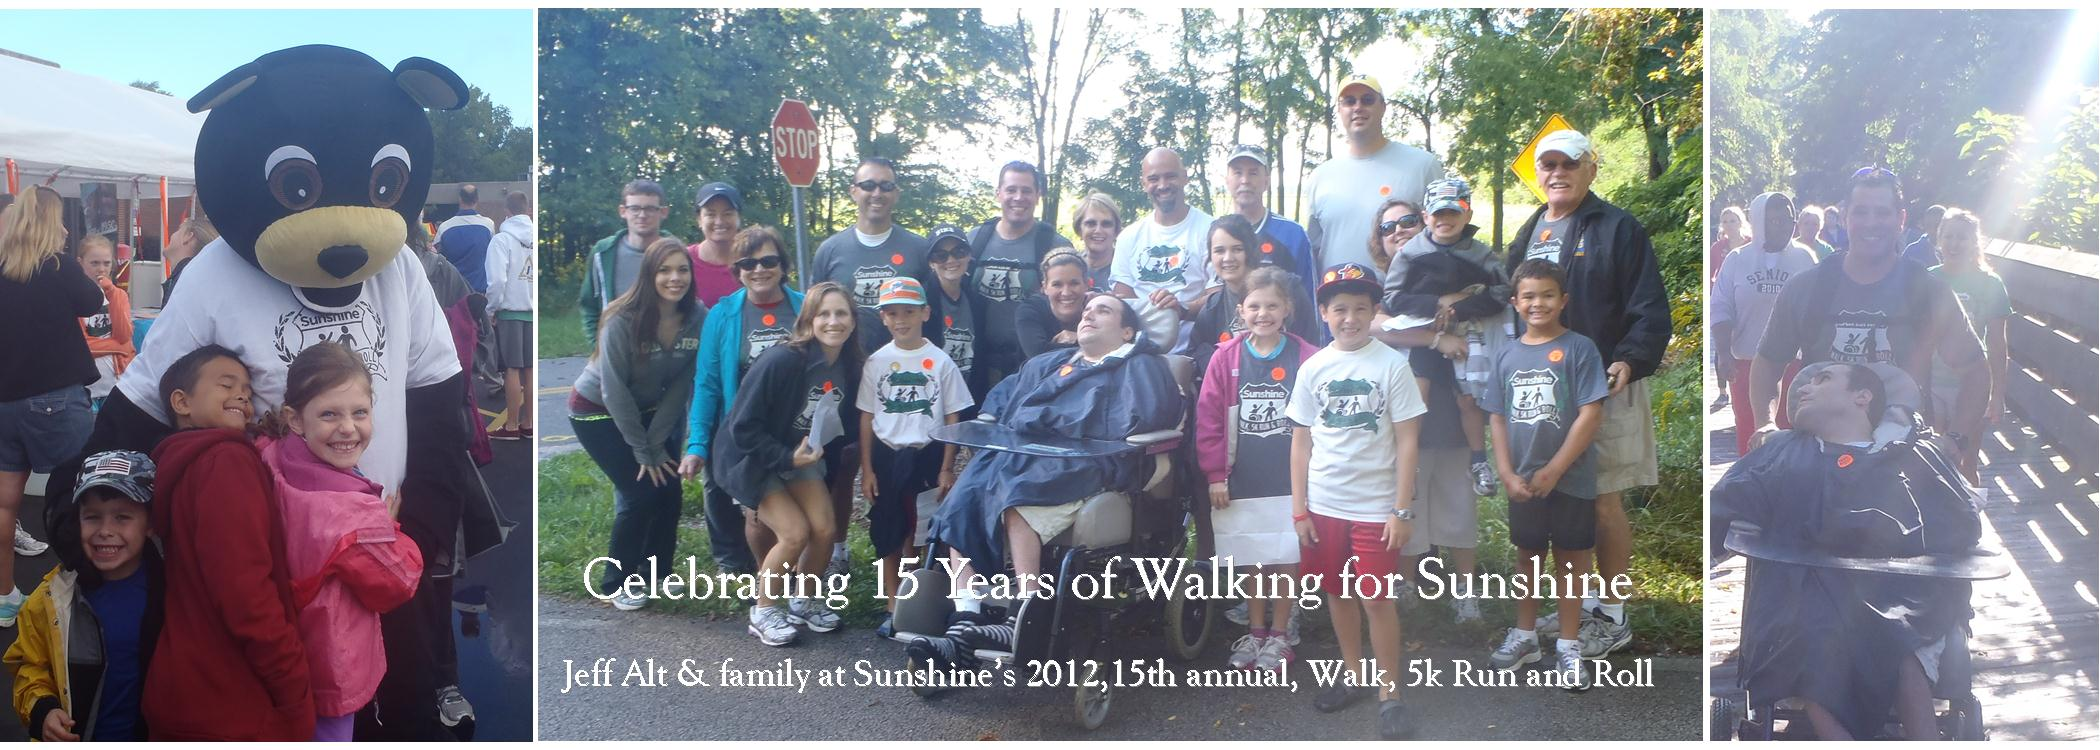 walk-with-sunshine-2012-fb-cover-photo